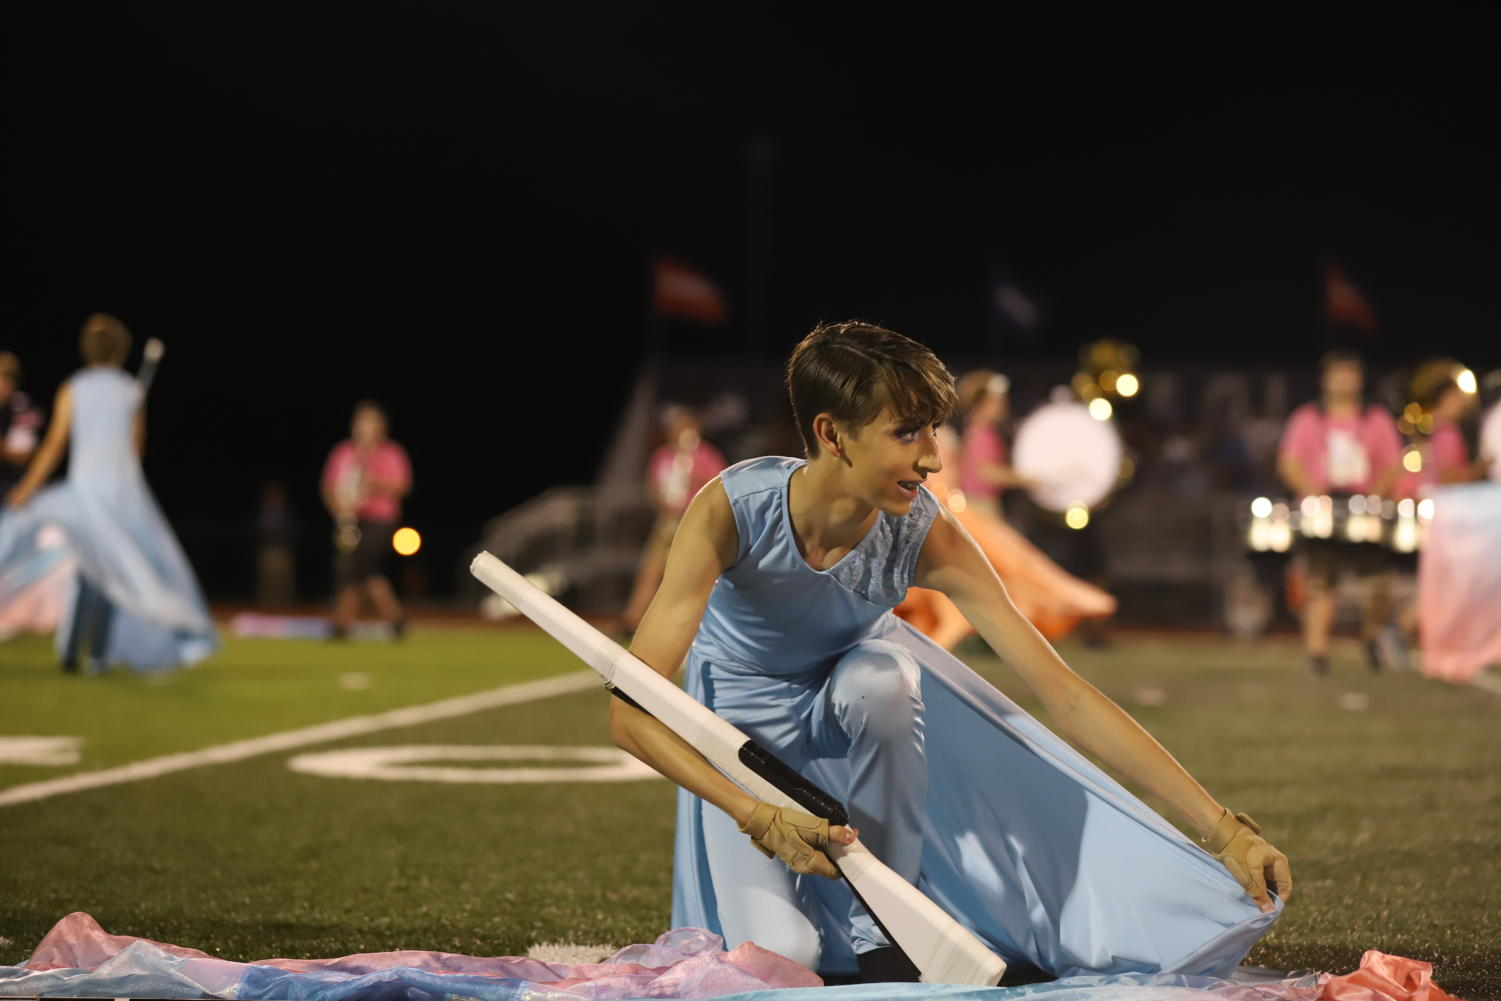 Junior Eric Welker gets ready to spin rifle during halftime at a football game.